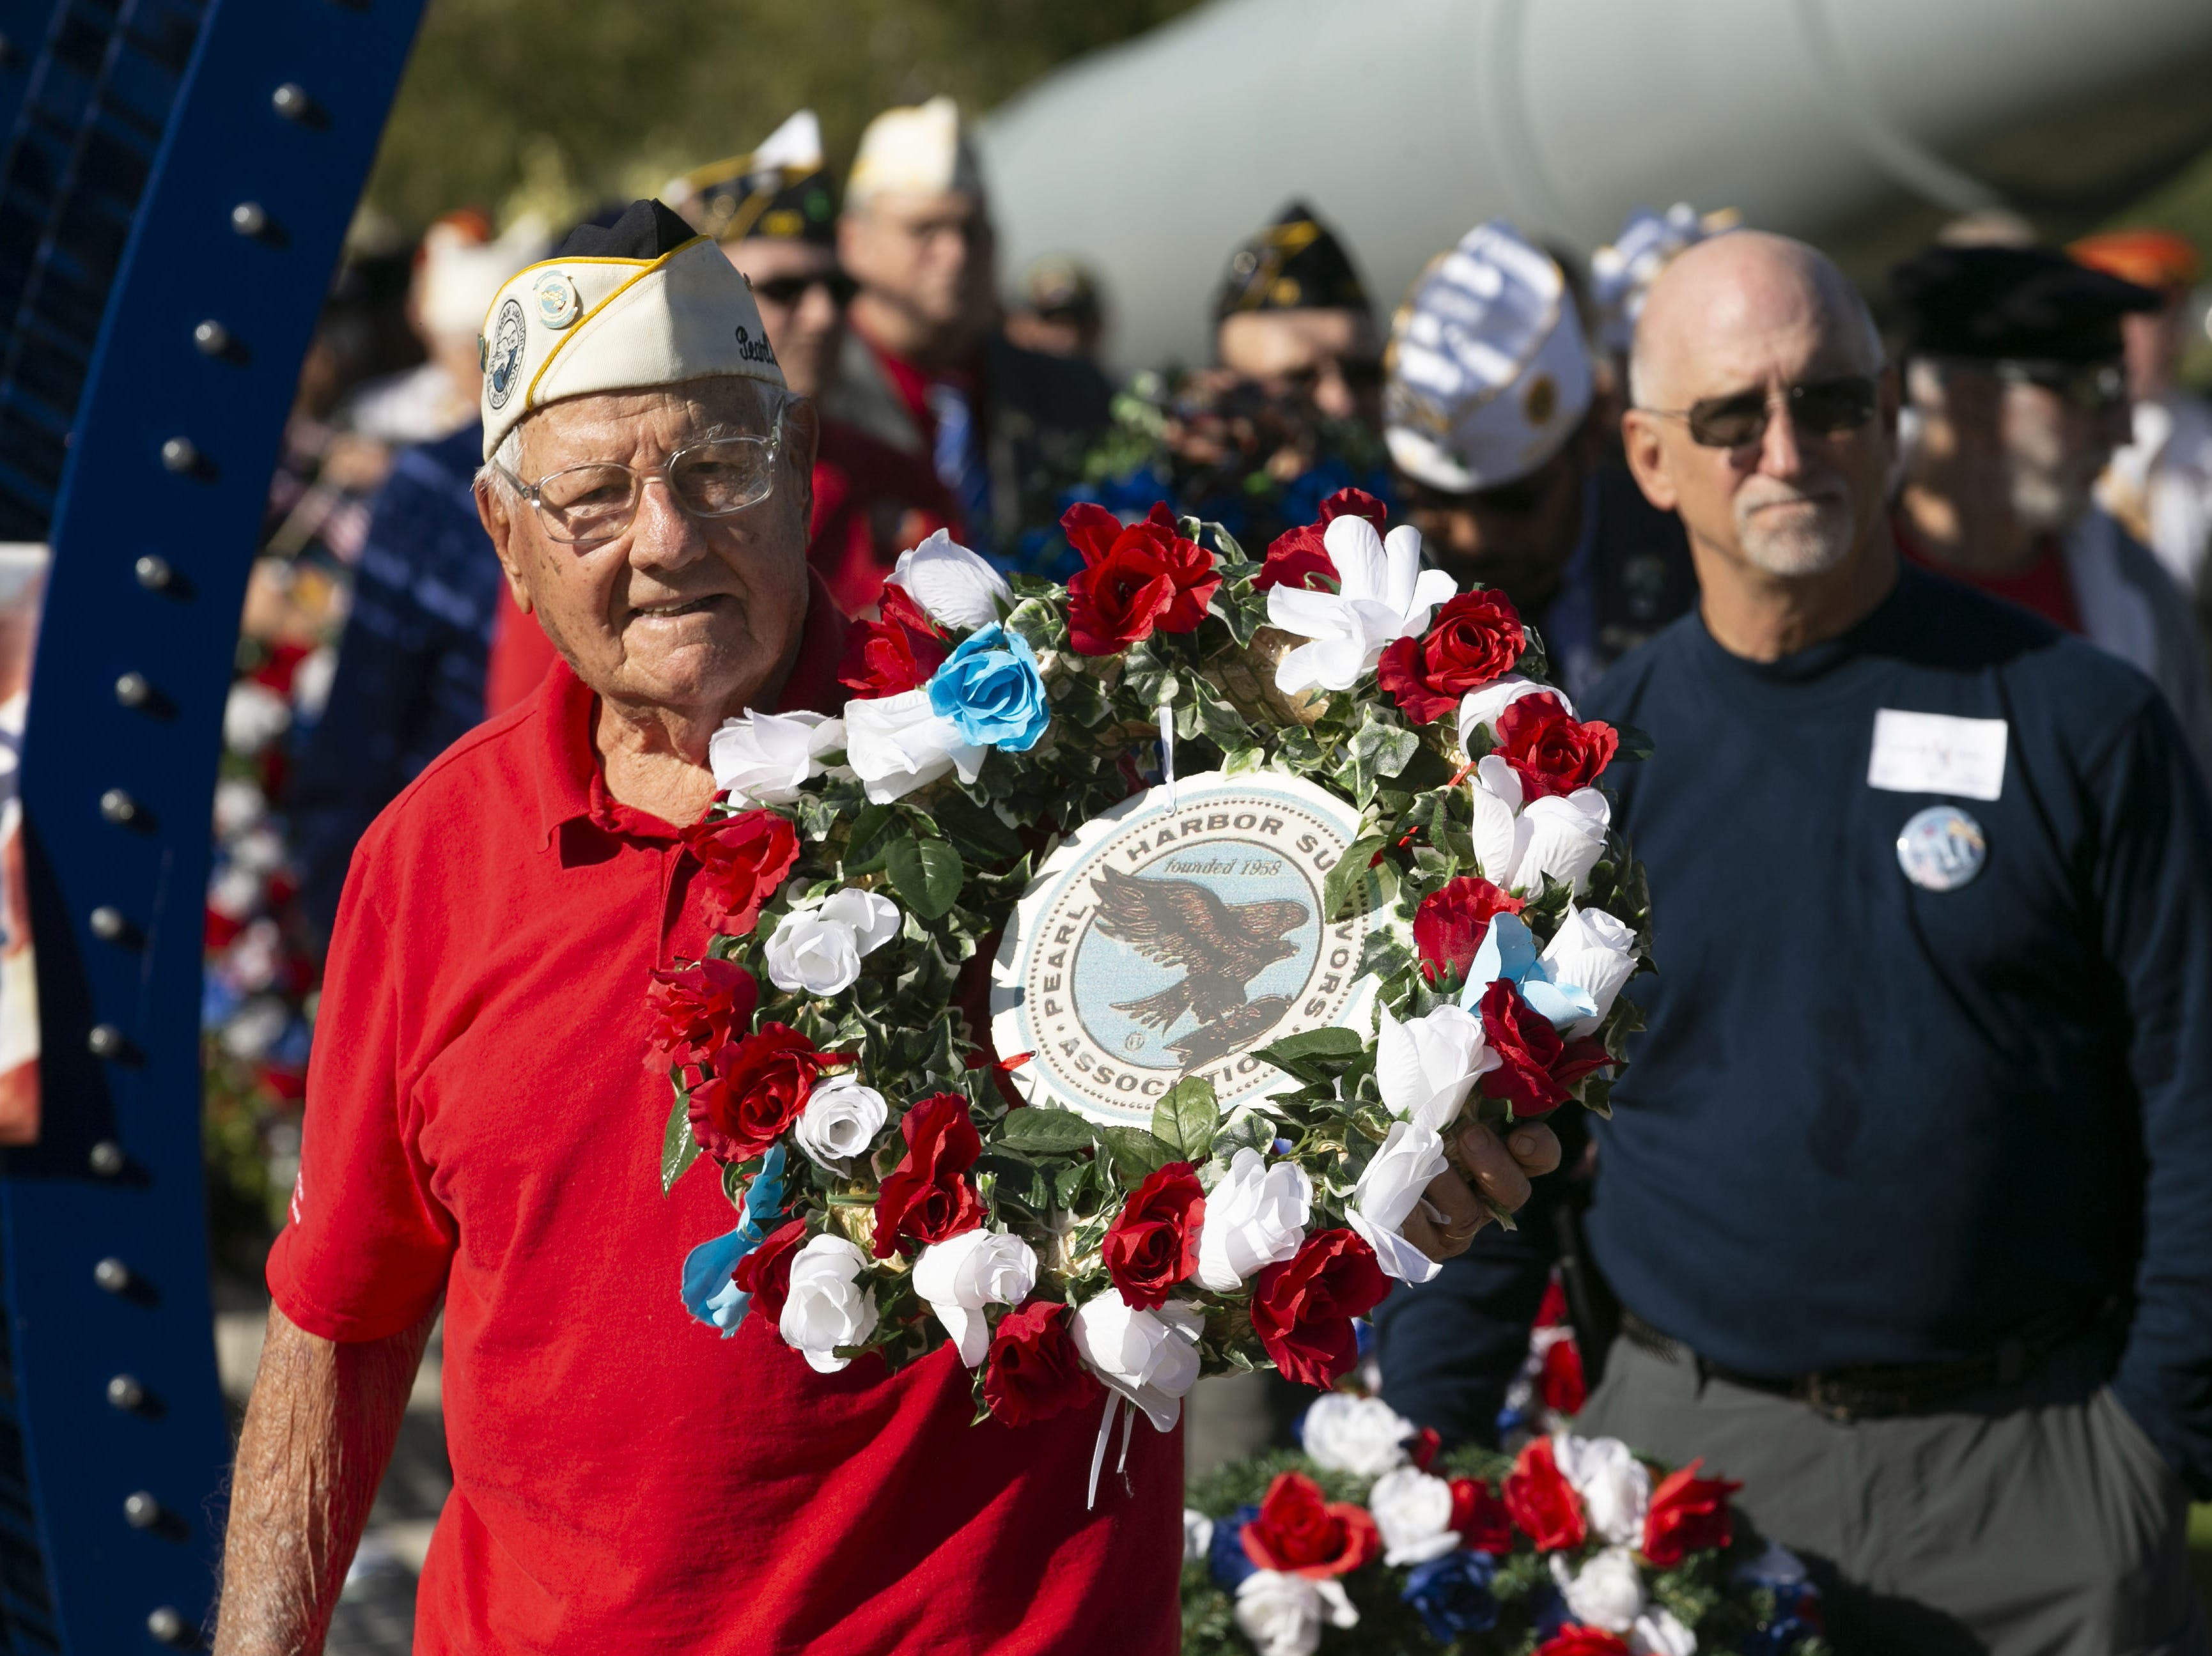 Pearl Harbor survivor Edward Miklavcic of Phoenix, a veteran of the then U.S. Army Air Forces, places a memorial wreath during a Pearl Harbor Remembrance Day event at Wesley Bolin Plaza in Phoenix on the 77th anniversary of the attack on Pearl Harbor, on Dec. 7, 2018.